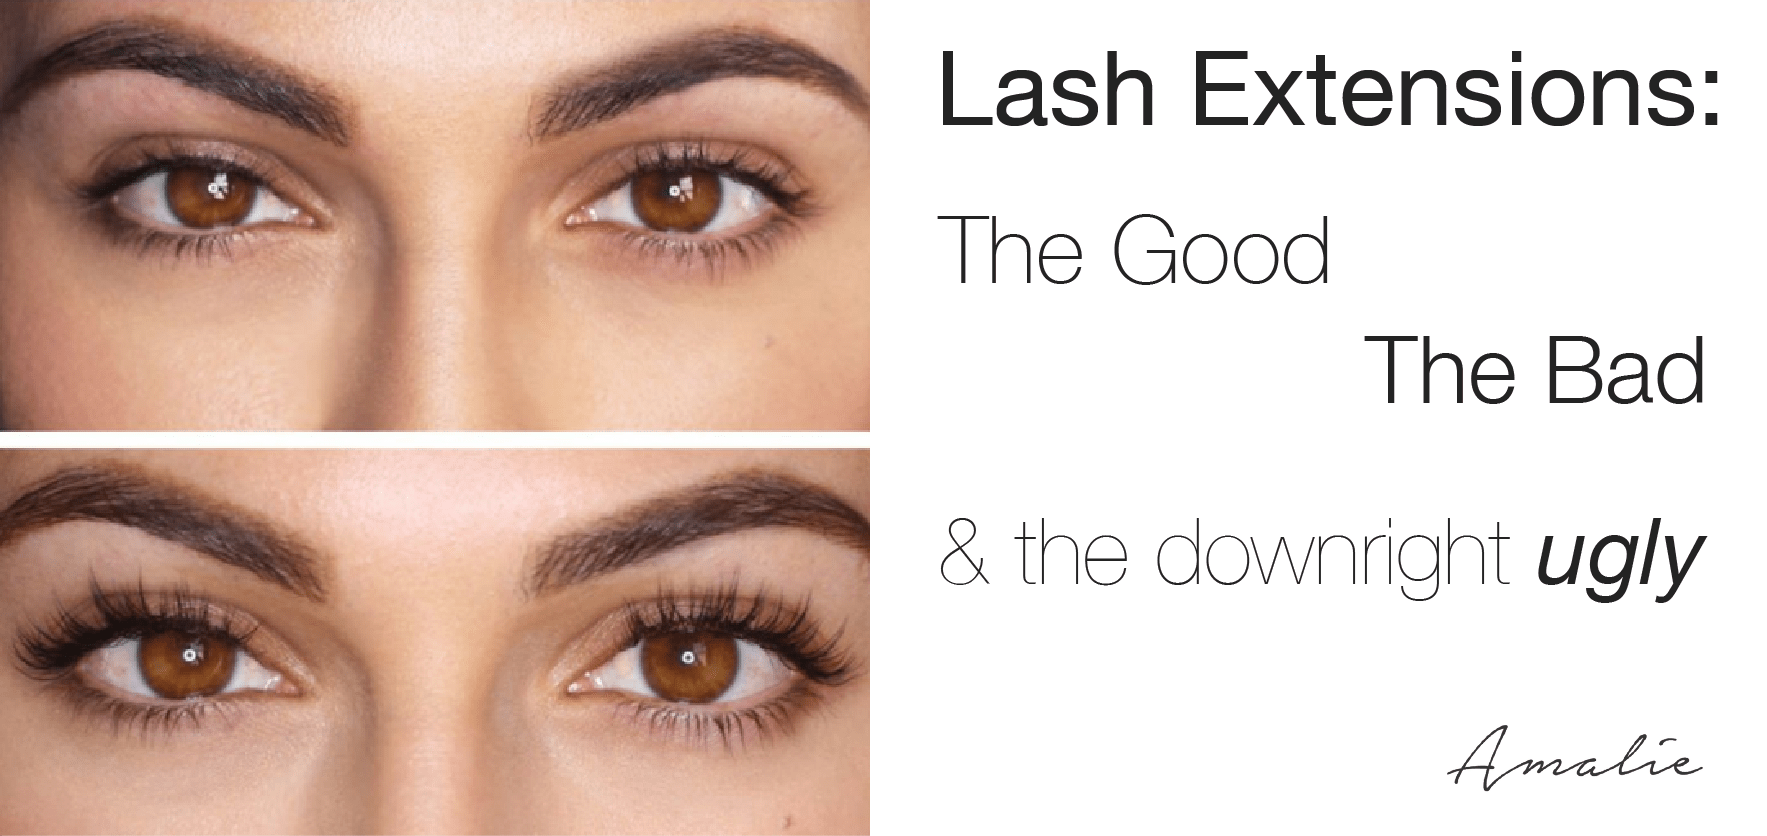 6511b21333e Eyelash Extension Pros & Cons: The Good, The Bad and the Ugly ...